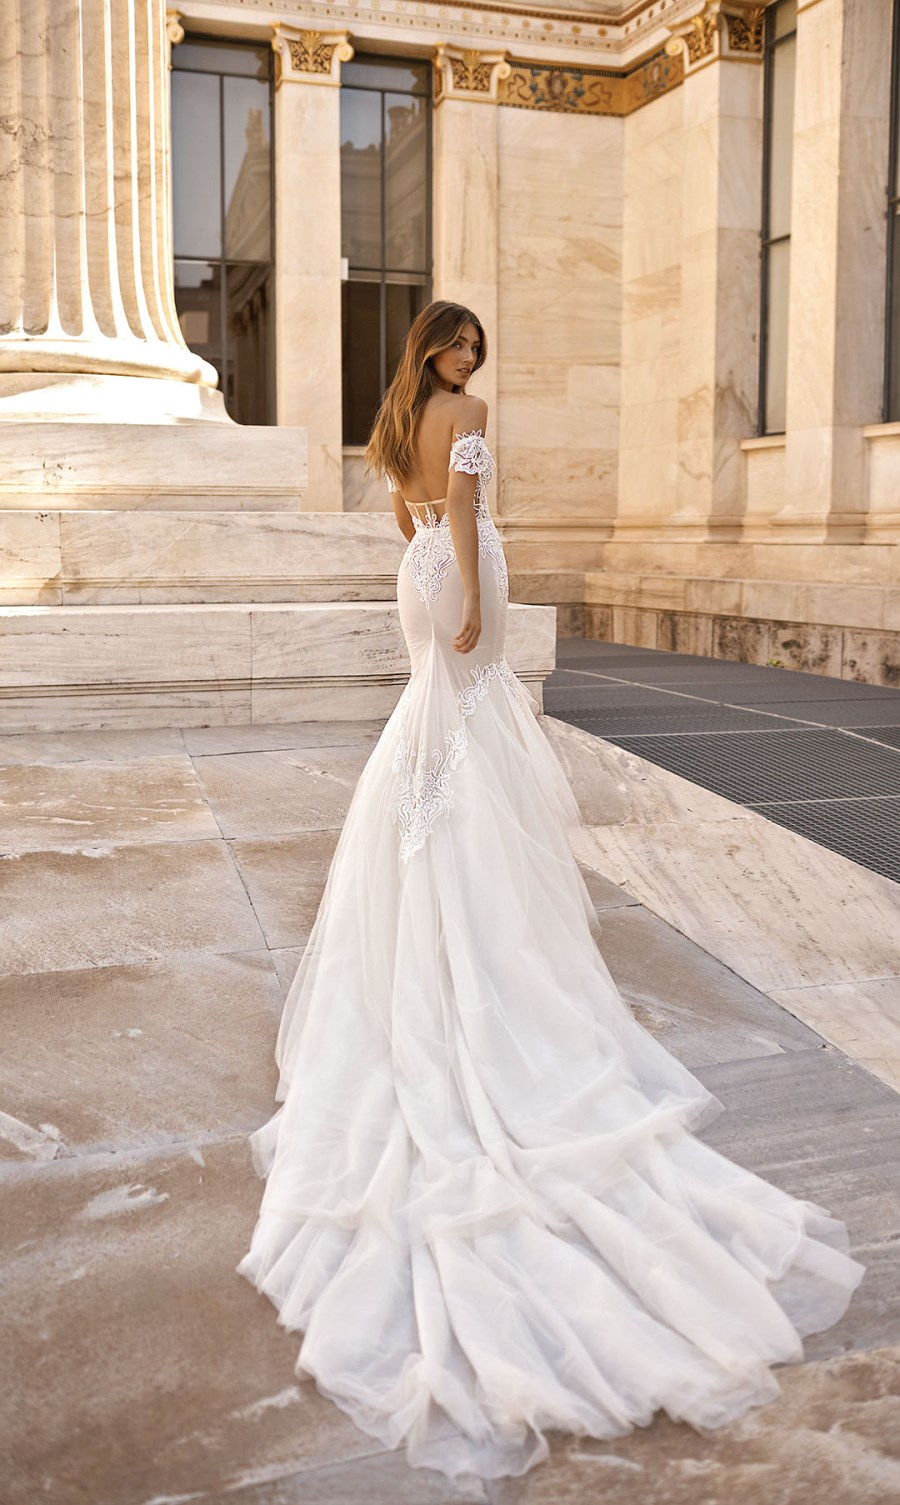 berta-wedding-dress-2019-1 (7)_1